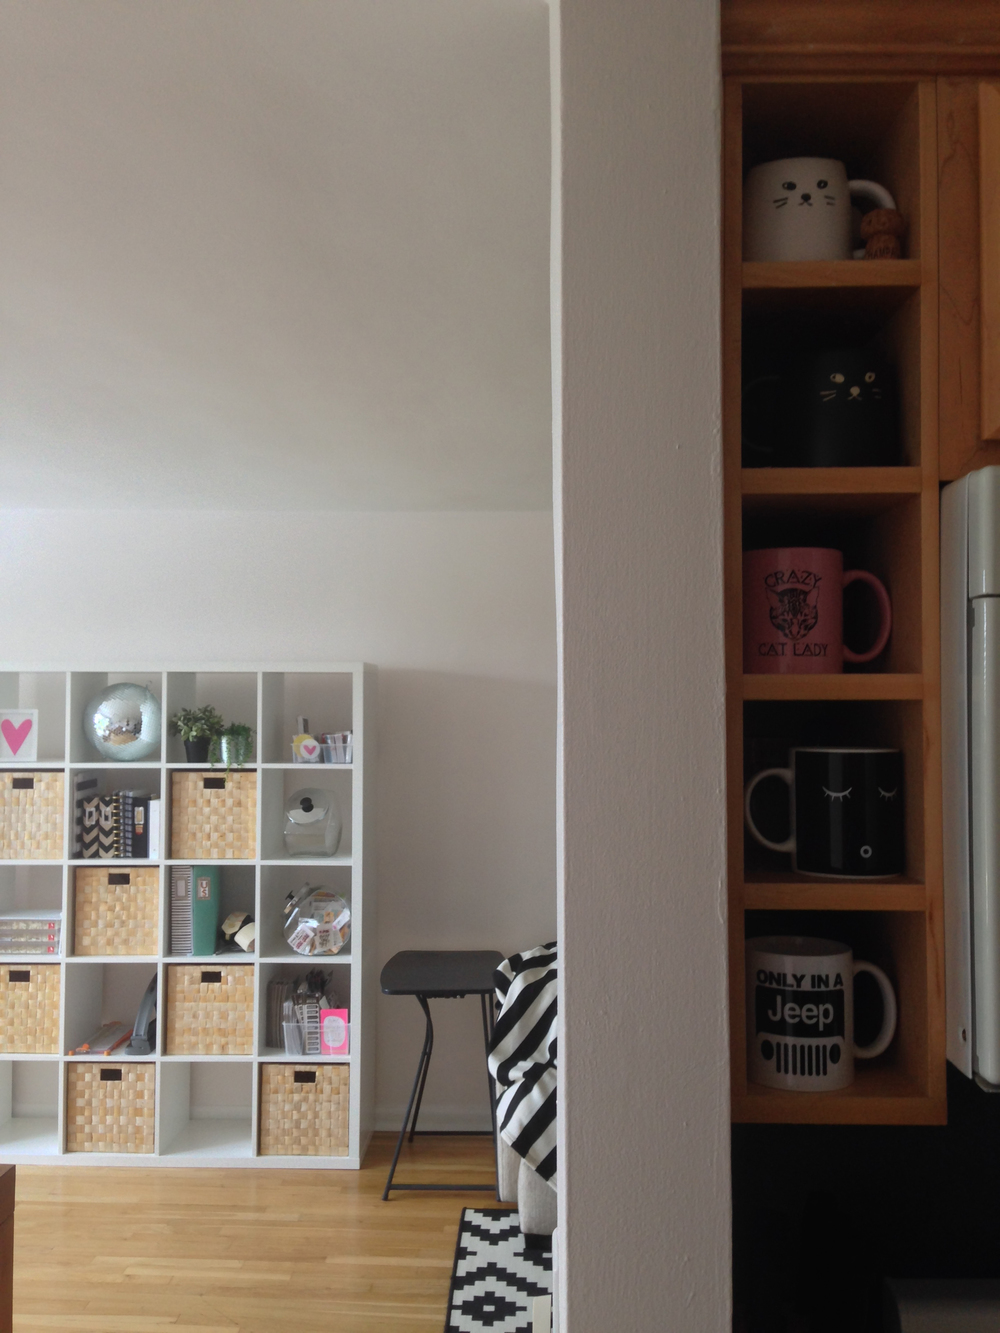 my first place // 3 months in | Amanda Zampelli